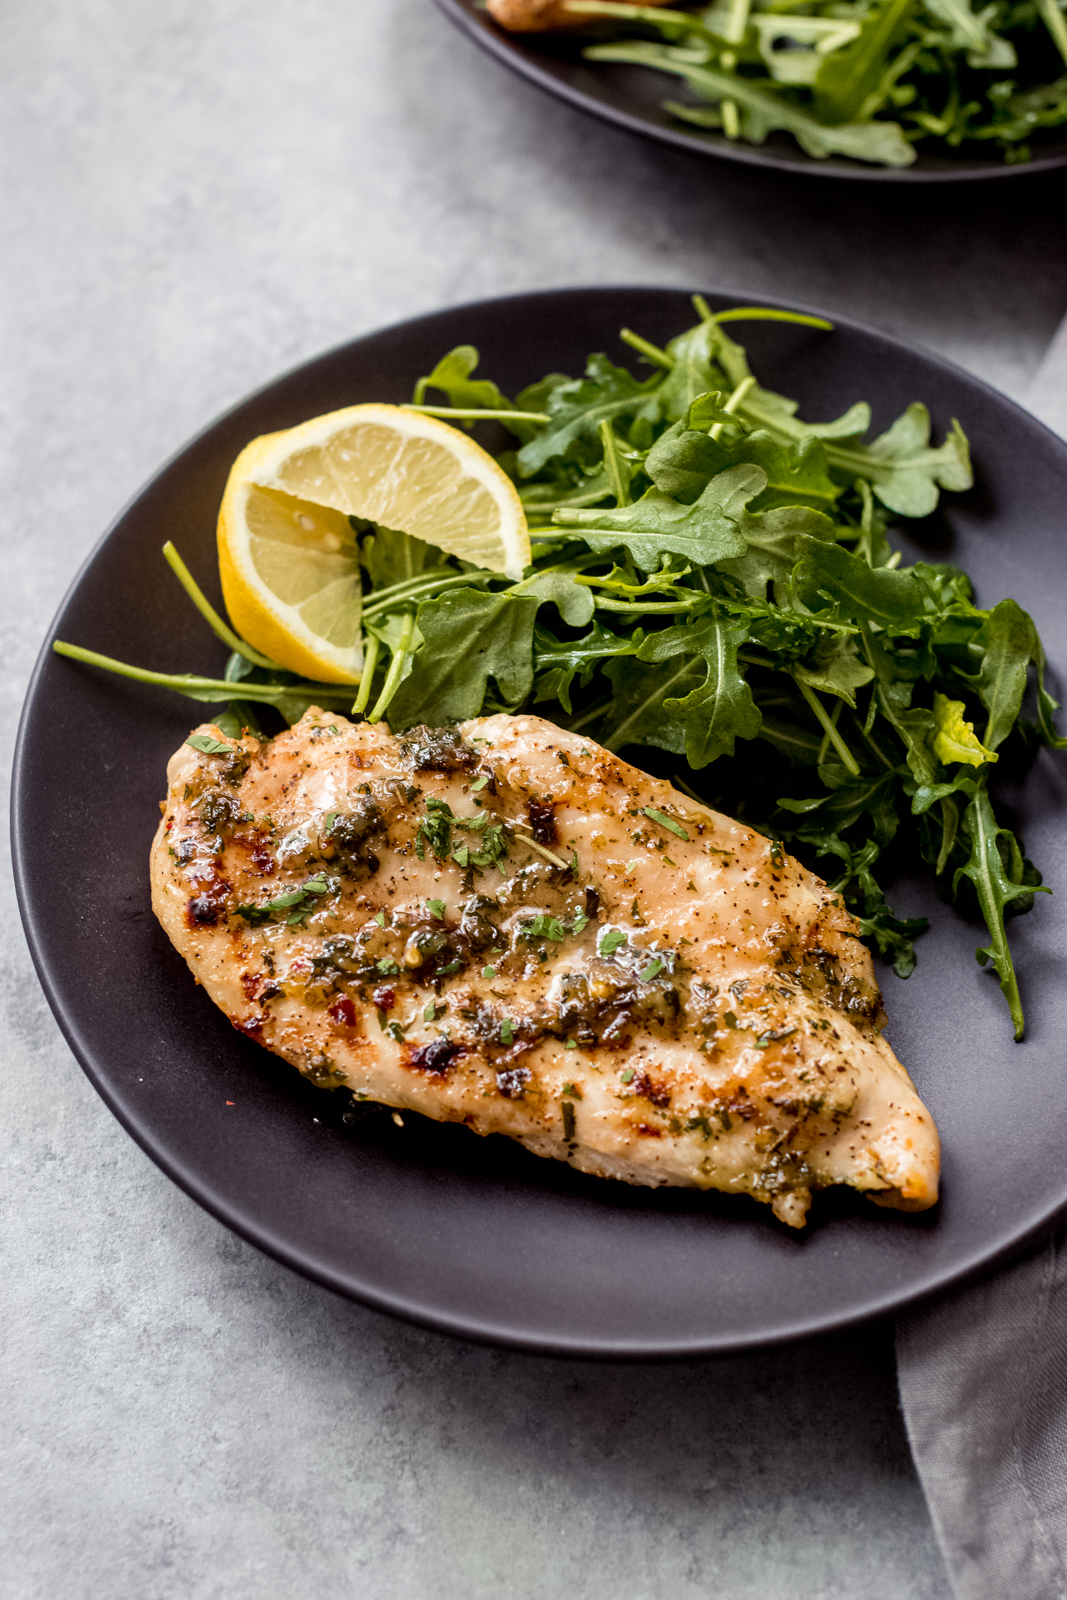 black plate with baked chicken breast, lemon slices, and fresh arugula